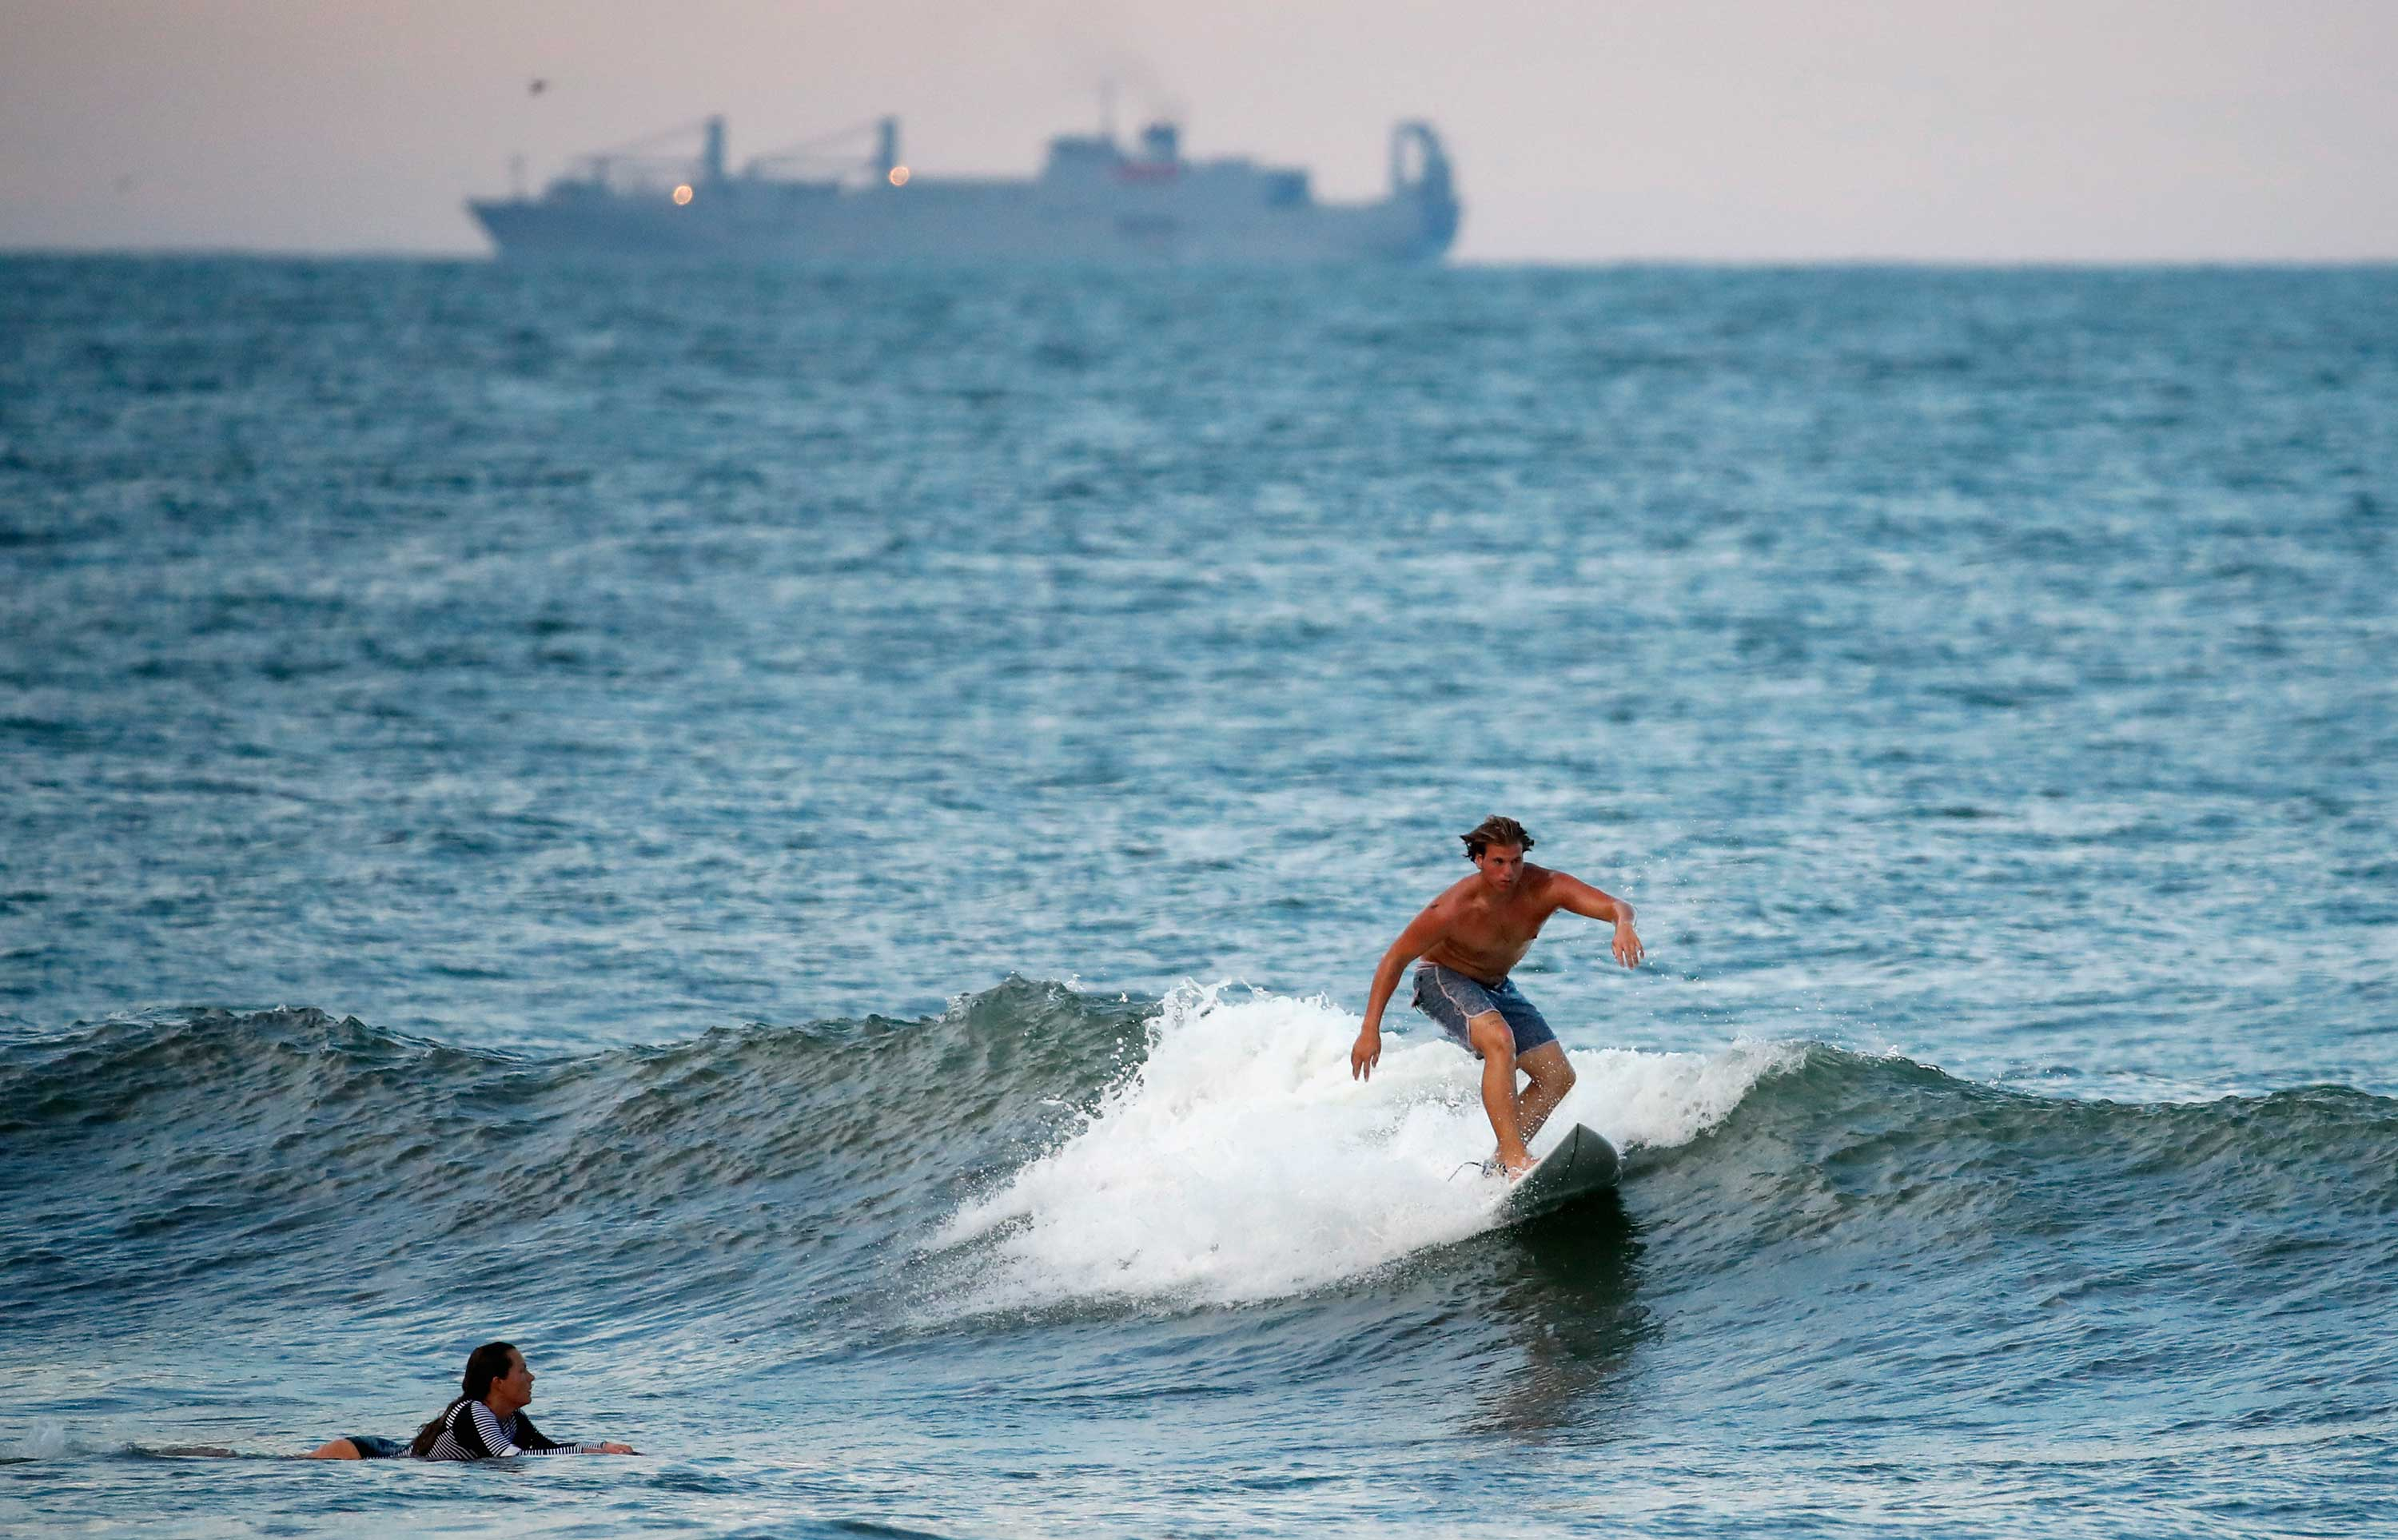 <div class='meta'><div class='origin-logo' data-origin='none'></div><span class='caption-text' data-credit='Alex Brandon/AP Photo'>A surfer catches a wave with a navy ship behind him, Tuesday, Sept. 11, 2018, in Virginia Beach, Va.</span></div>